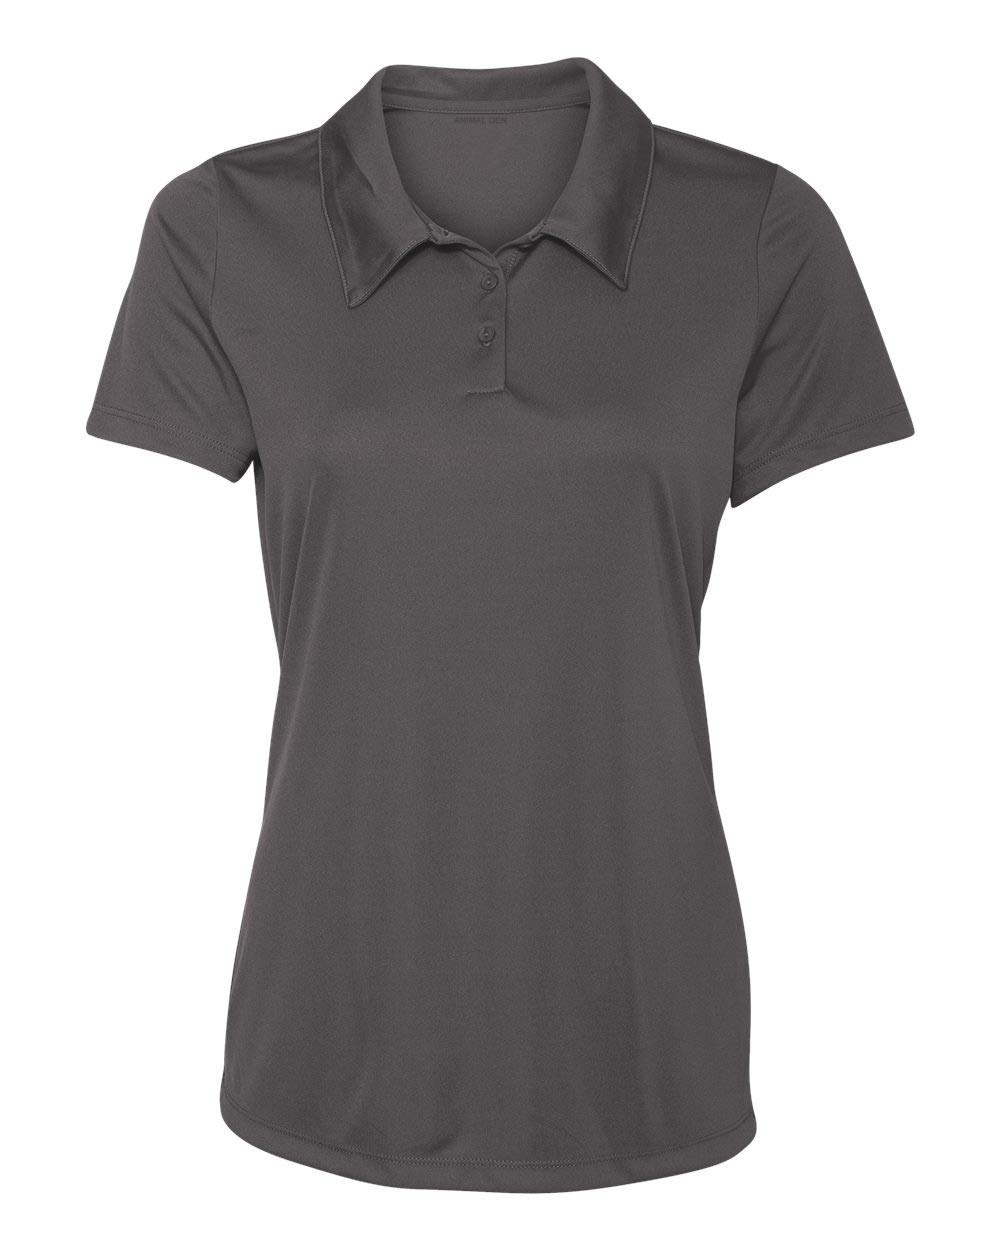 Animal Den Women's Dry-Fit Golf Polo Shirts 3-Button Golf Polo's in 20 Colors XS-3XL Shirt Graphi-M by Animal Den